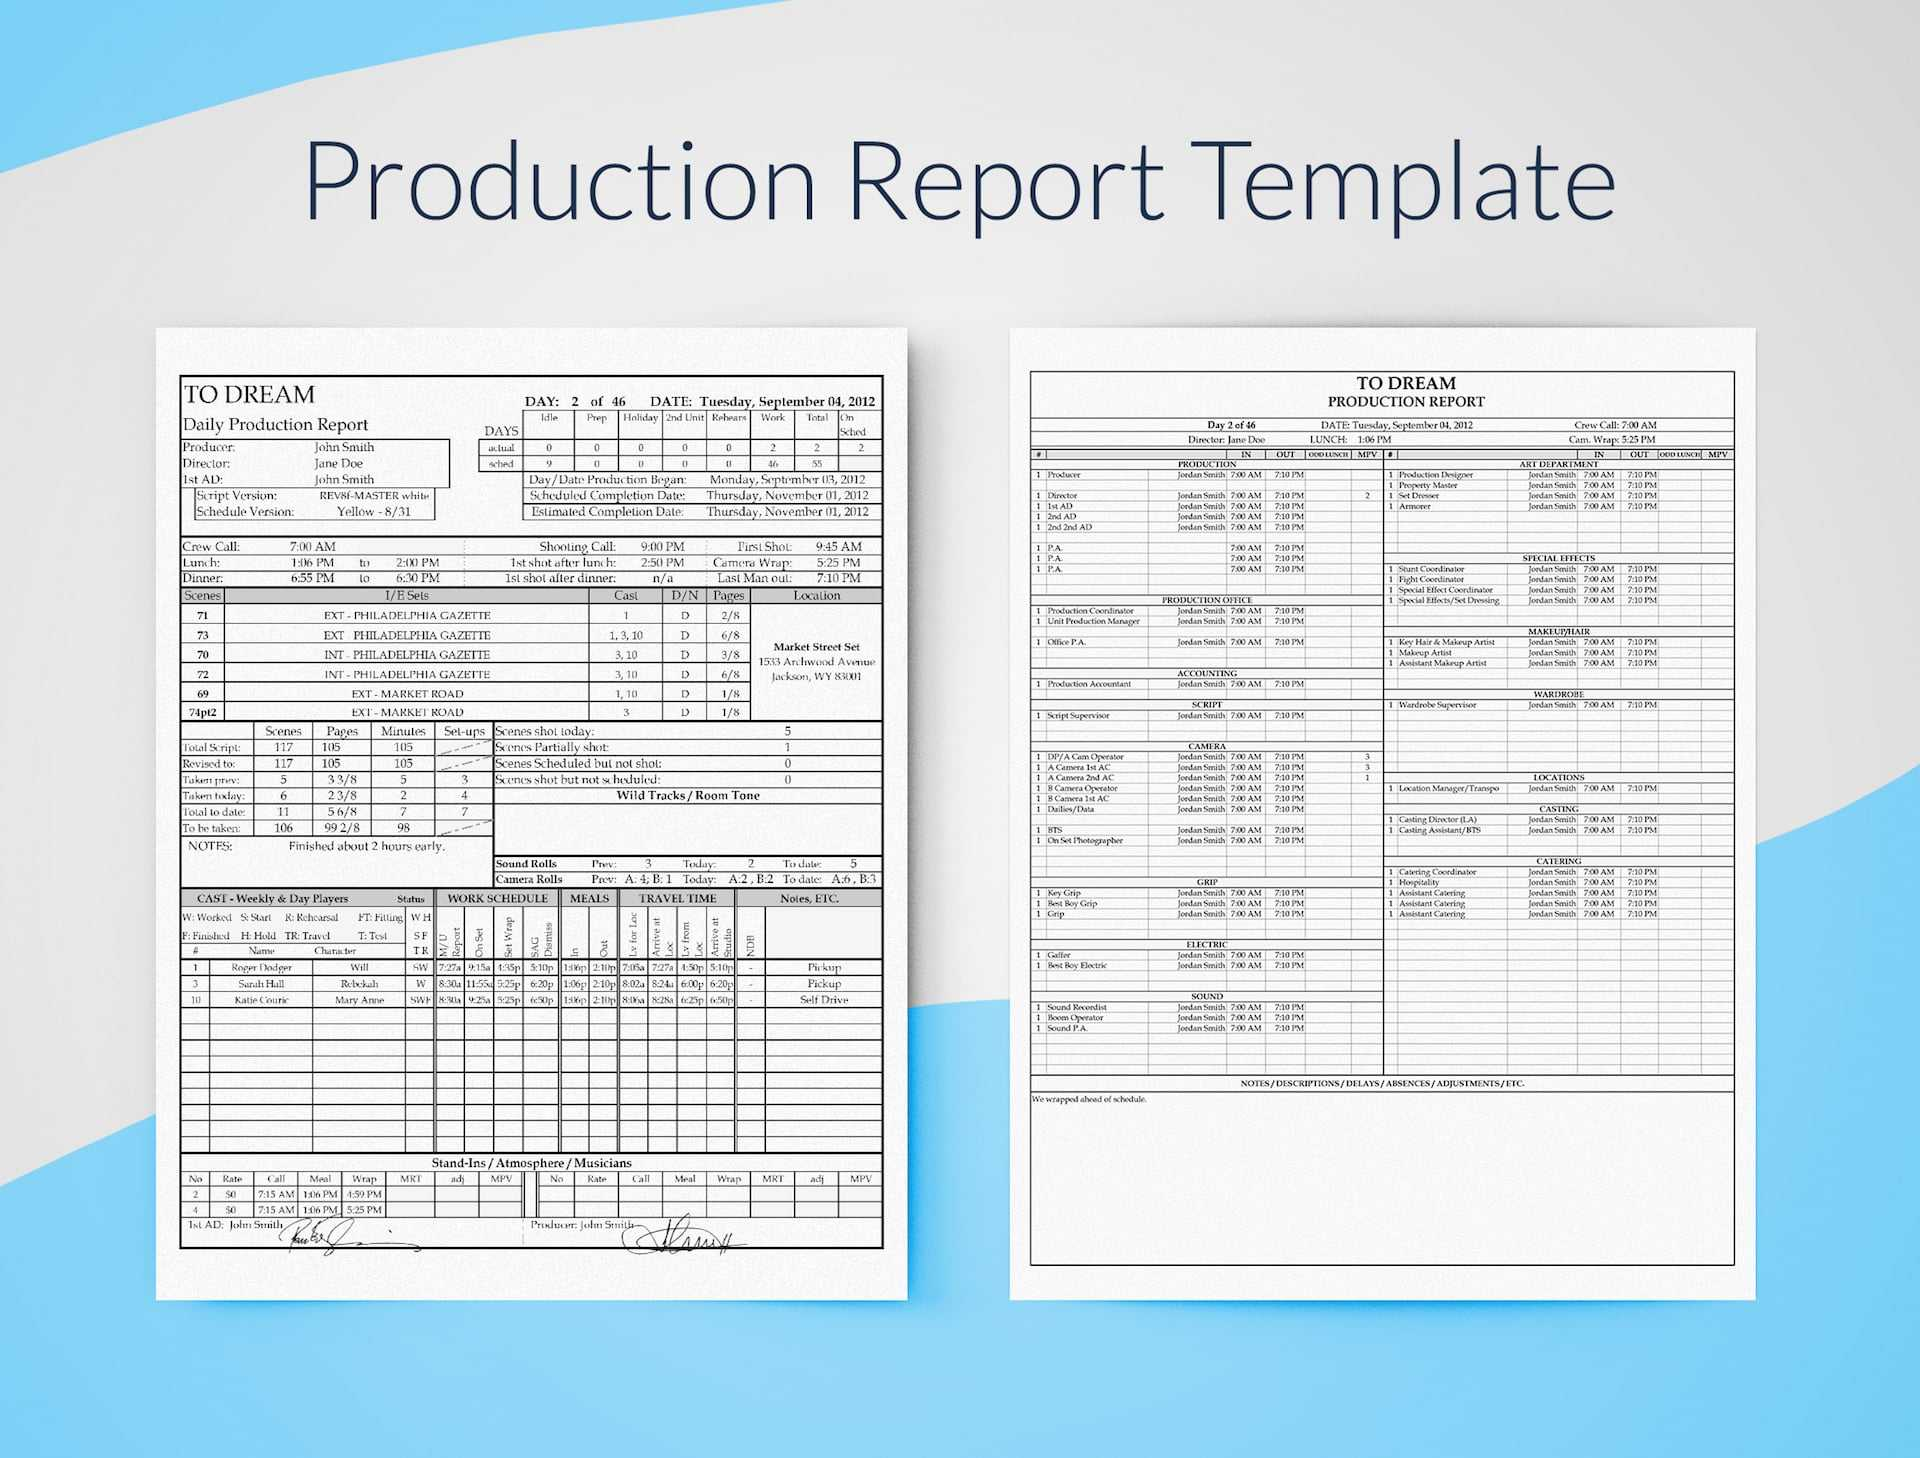 Production Report Template For Excel - Free Download | Sethero In Monthly Productivity Report Template